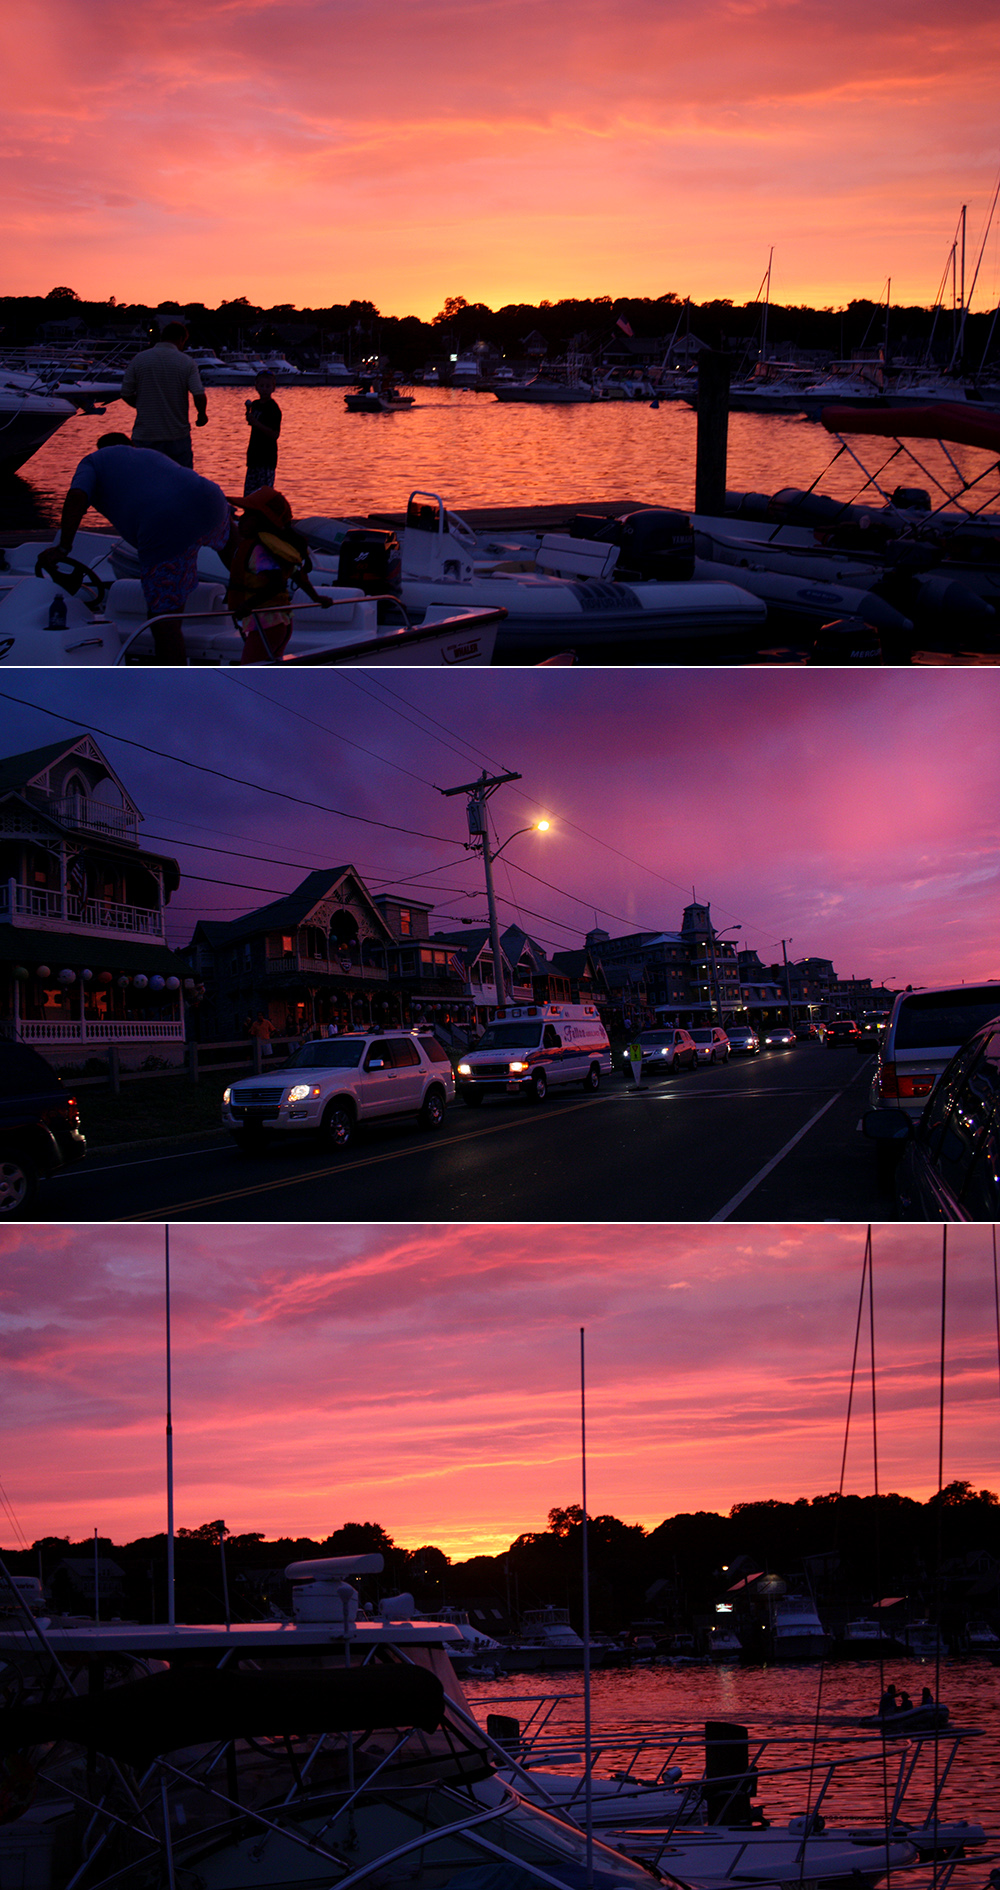 sunset in oak bluffs, martha's vineyard